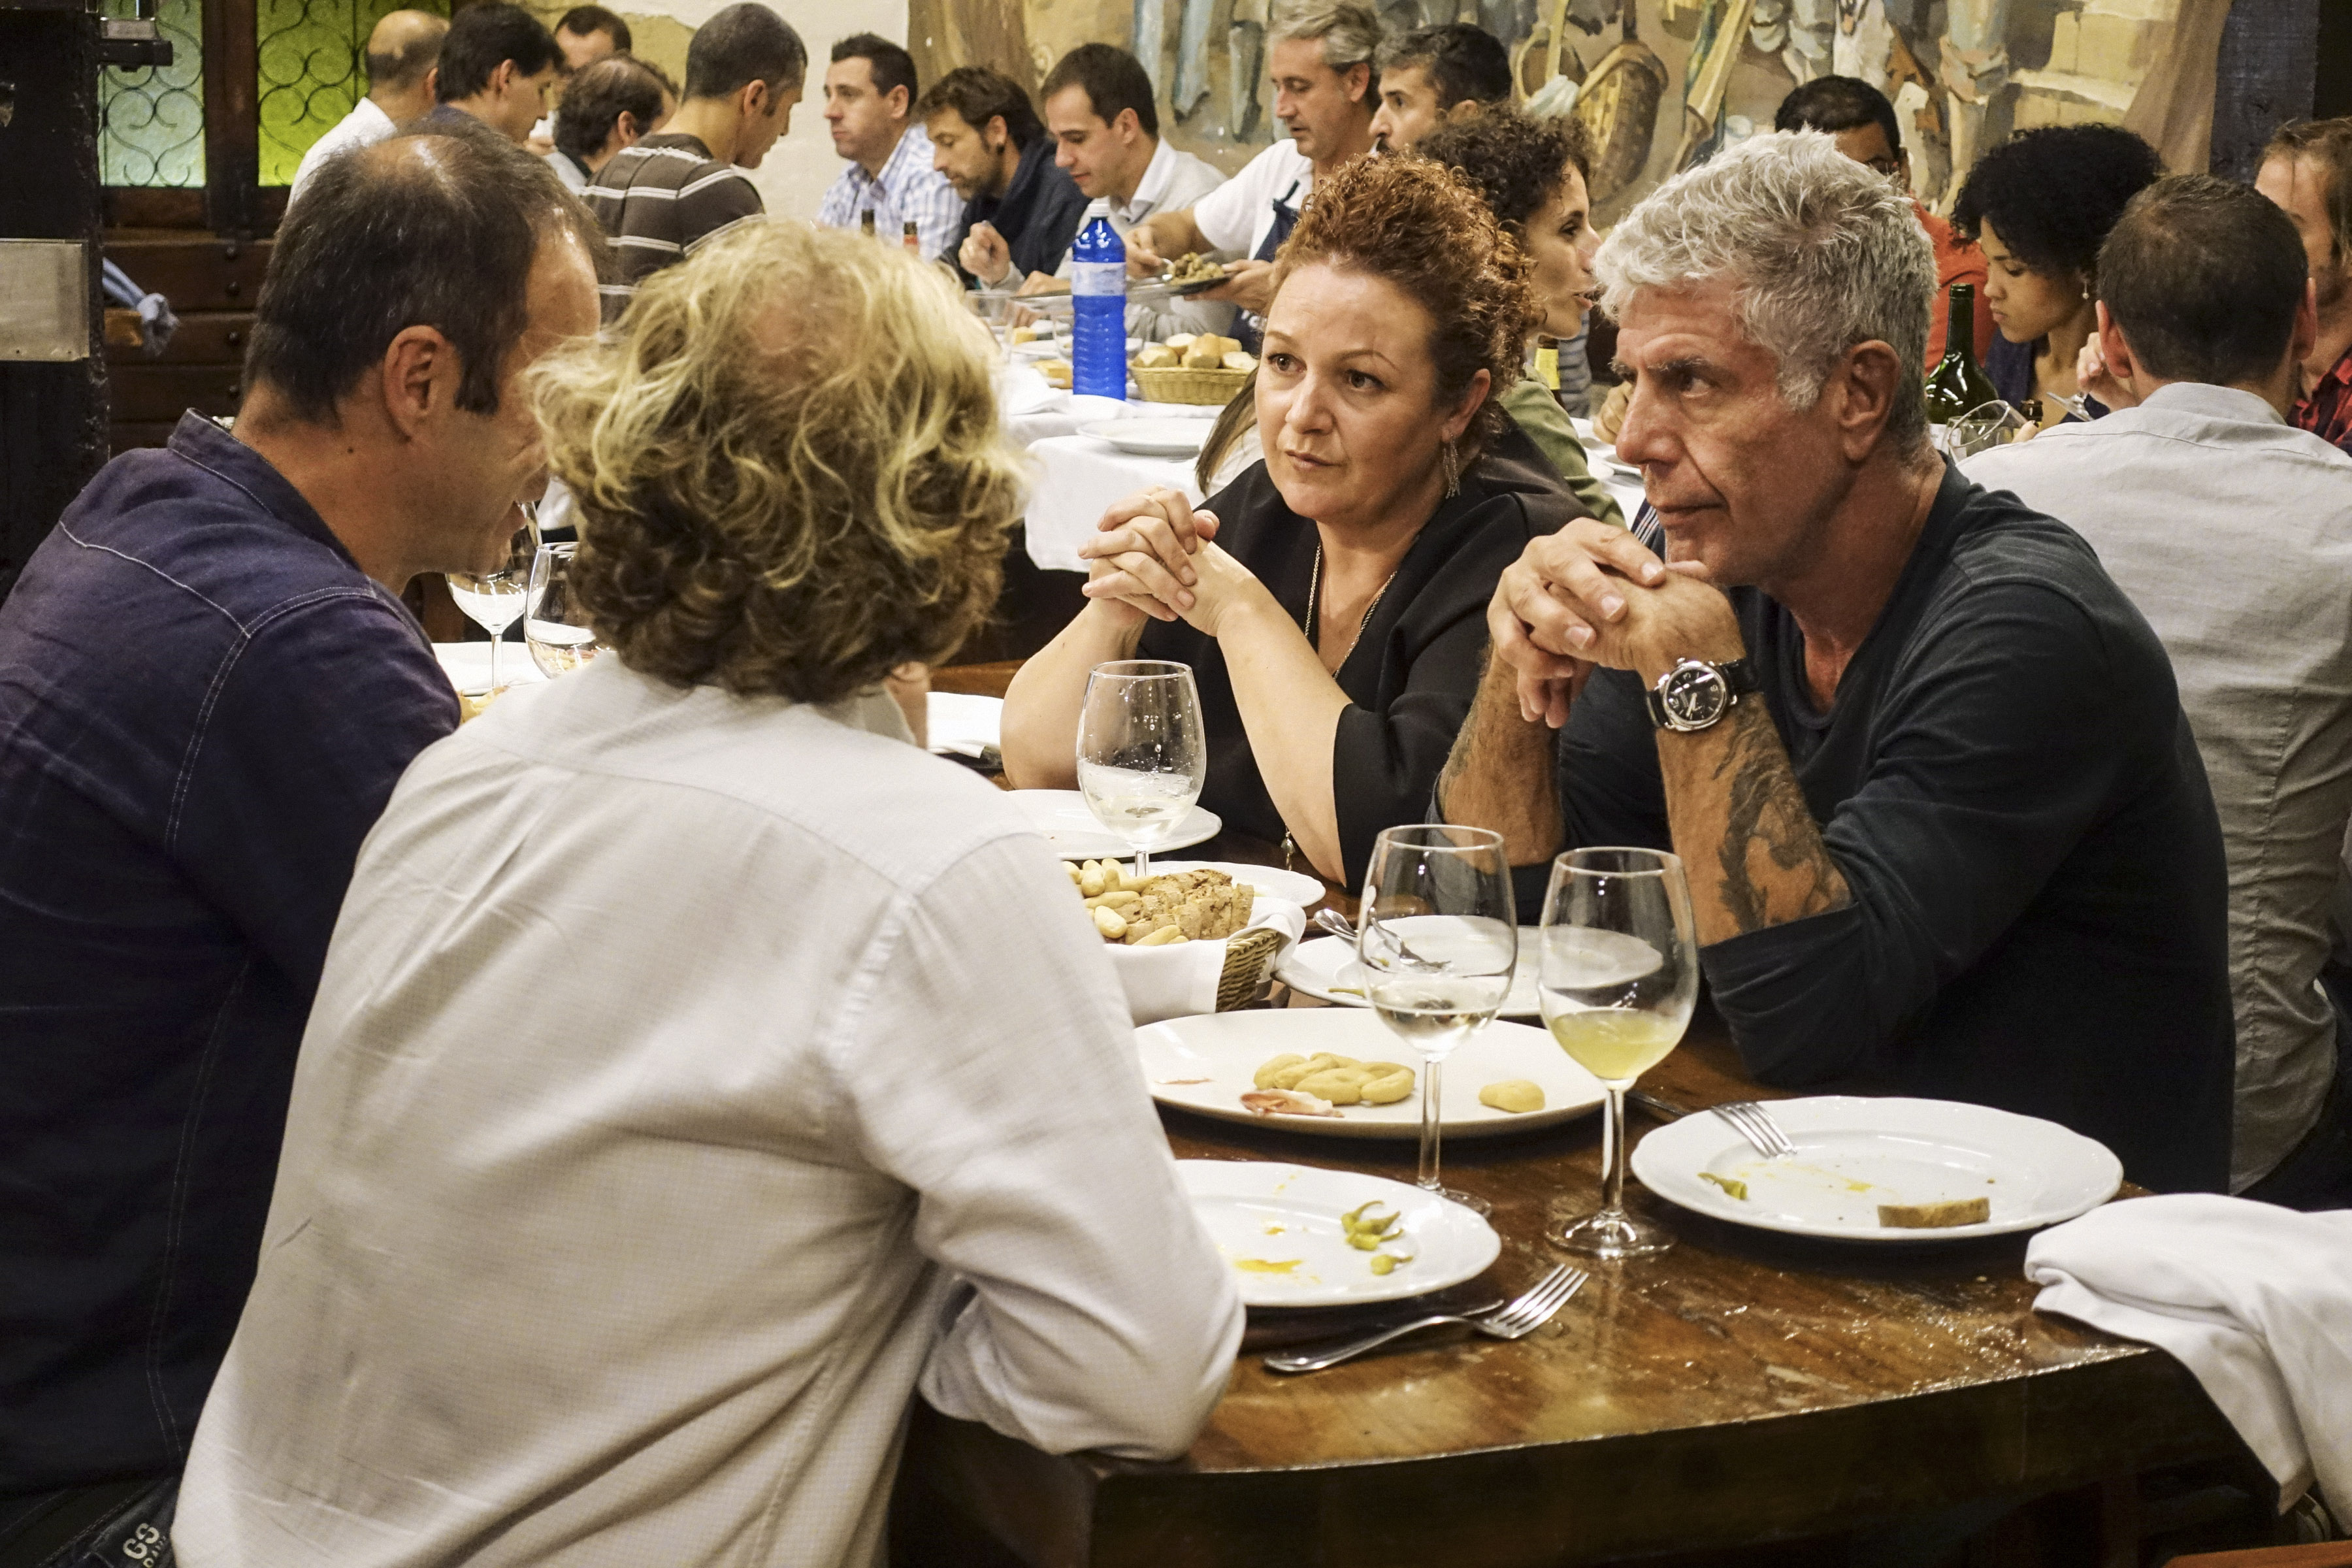 Anthony Bourdain and guests sit around a table during the San Sebastian episode of 'Parts Unknown.'